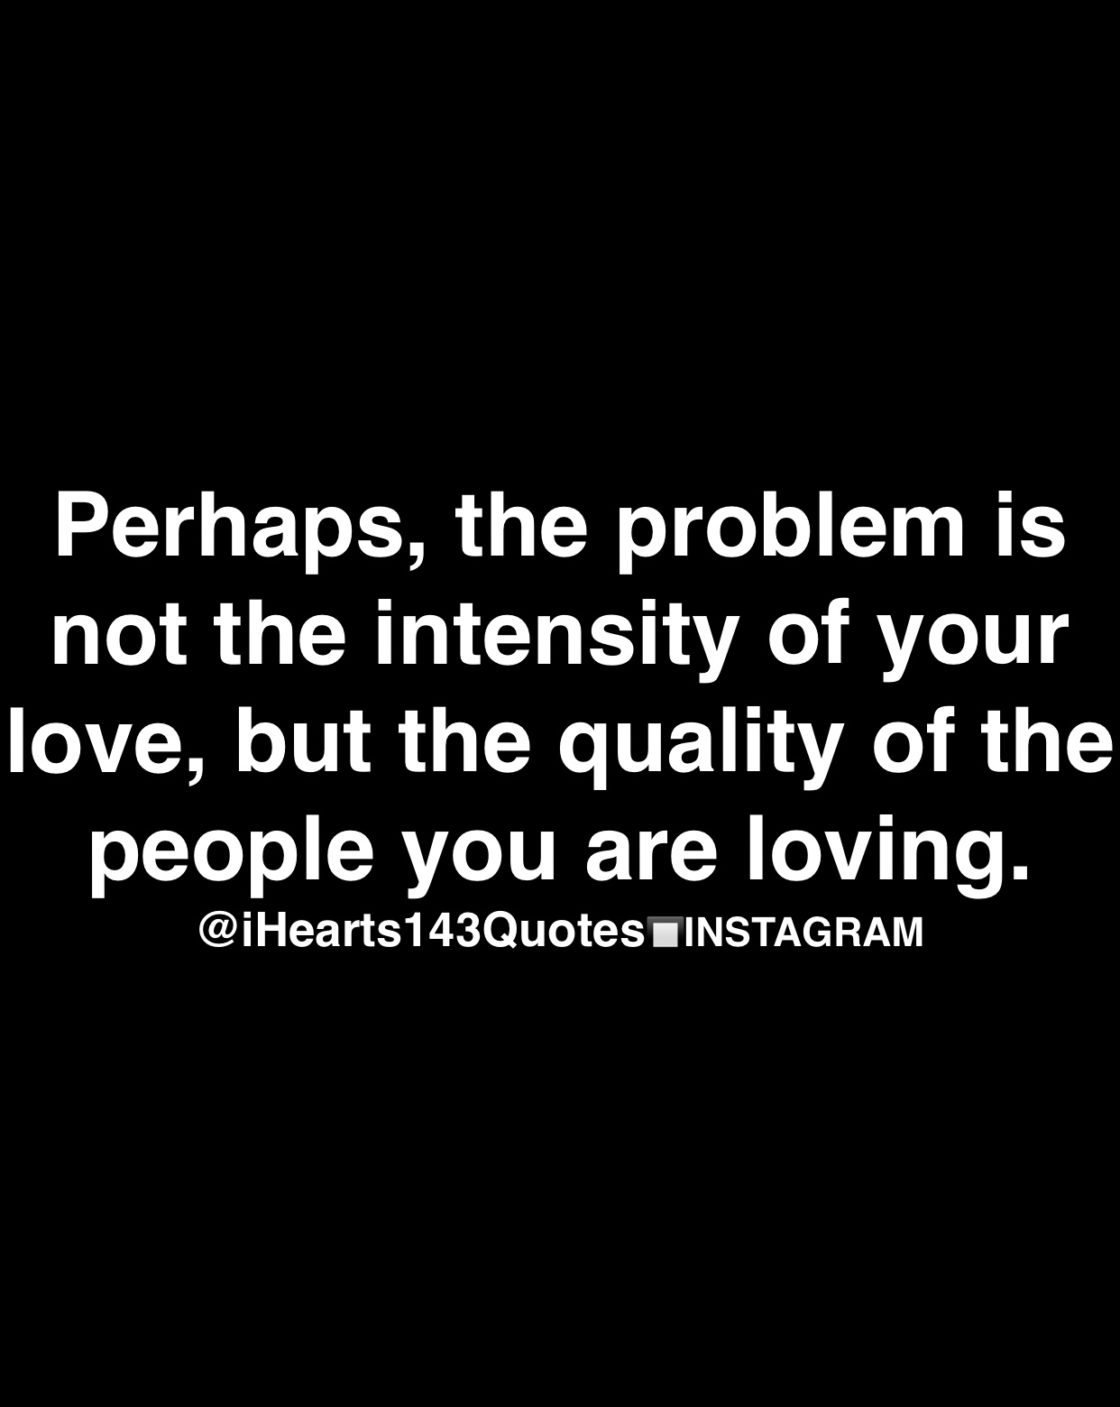 Wwwlove Quotes Love Quotes  Ihearts143Quotes